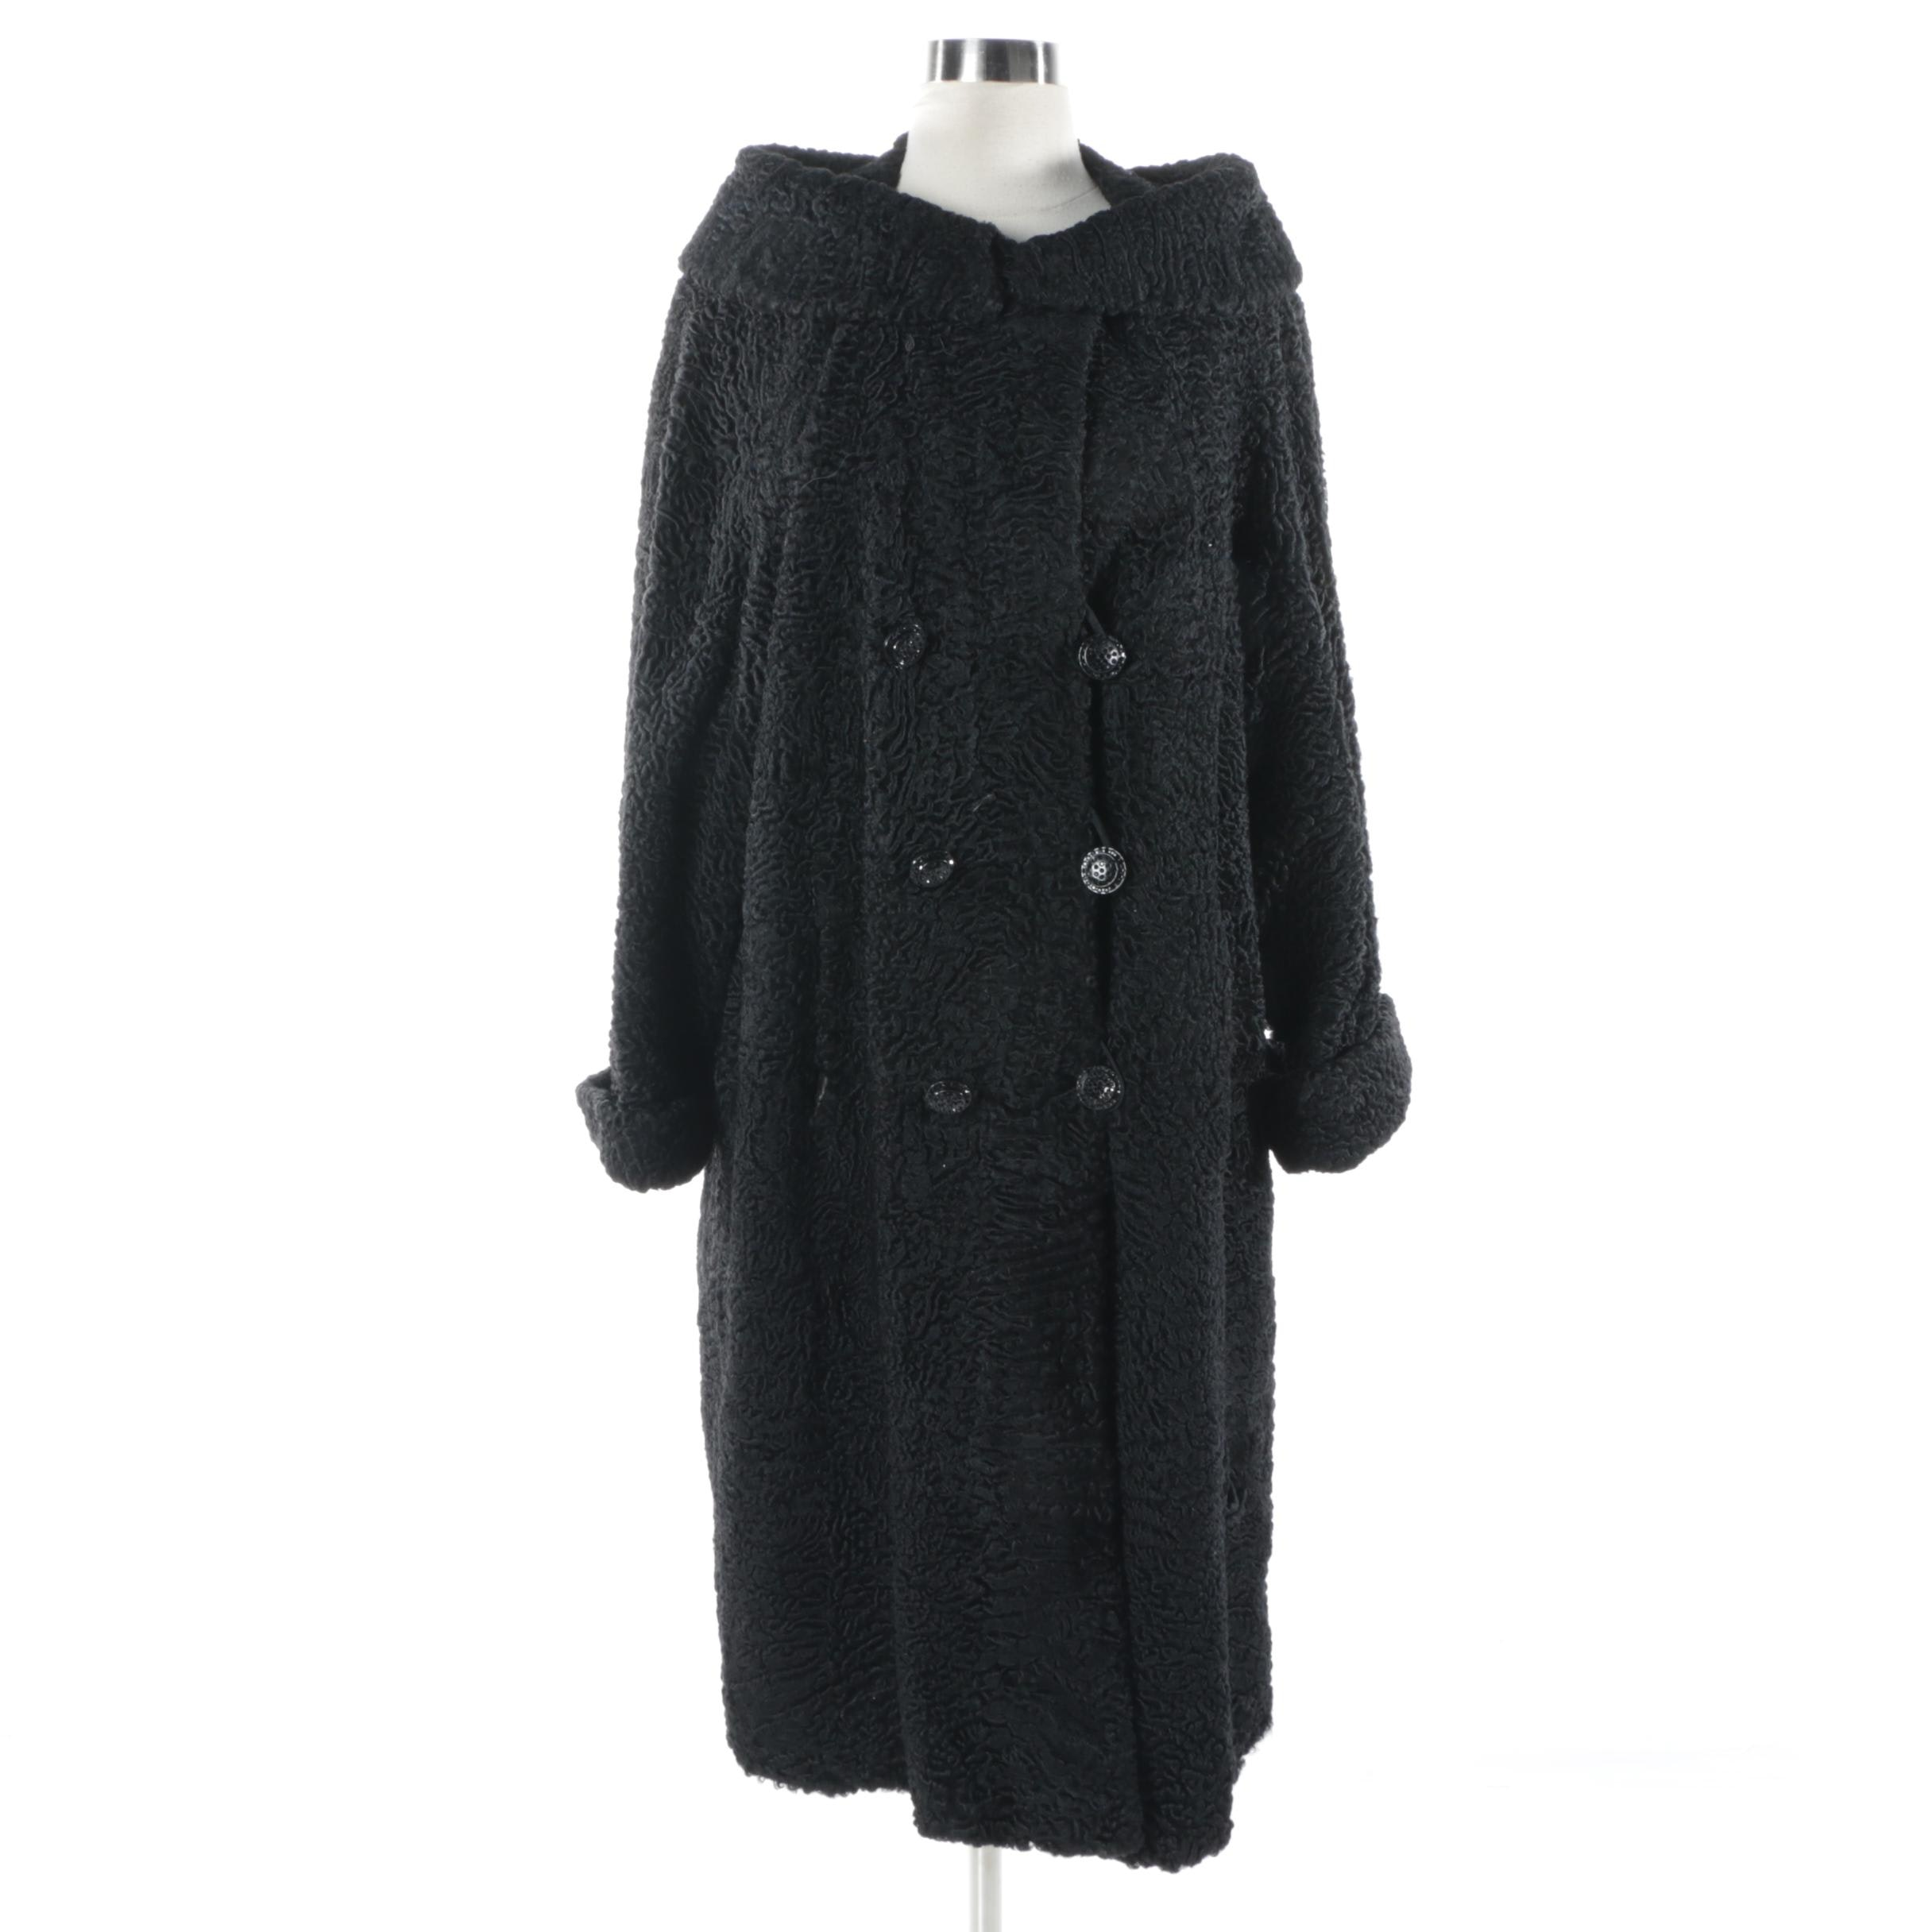 Women's Vintage Double-Breasted Black Persian Lamb Fur Coat